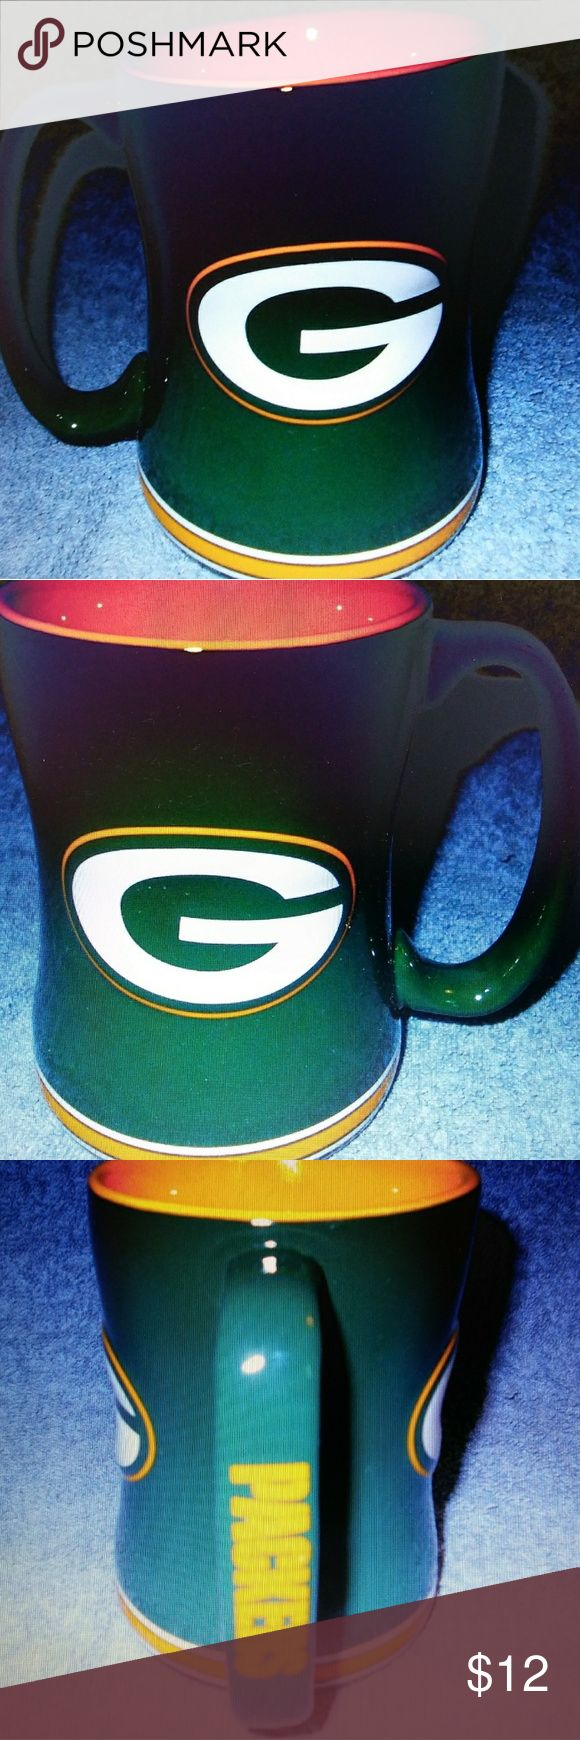 NFL Packers Mug-Used 2013 NFL Store Green Bay Packers Sculpted Ceramic 14OZ Coffee Cup/Mug. Boelter Brands Other